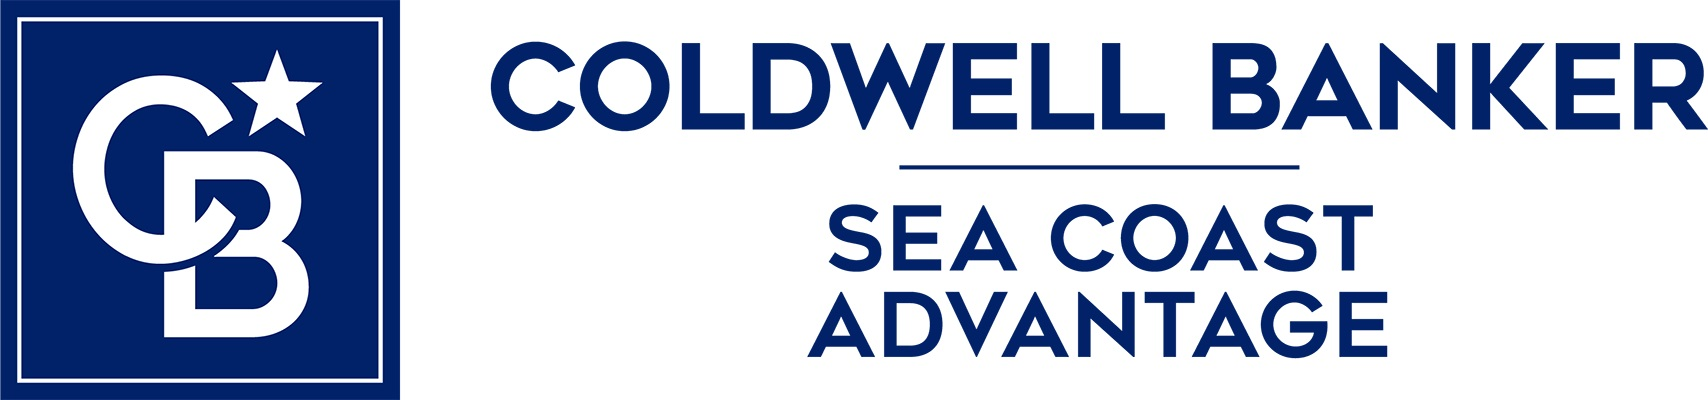 Michael Burns - Coldwell Banker Sea Coast Advantage Realty Logo